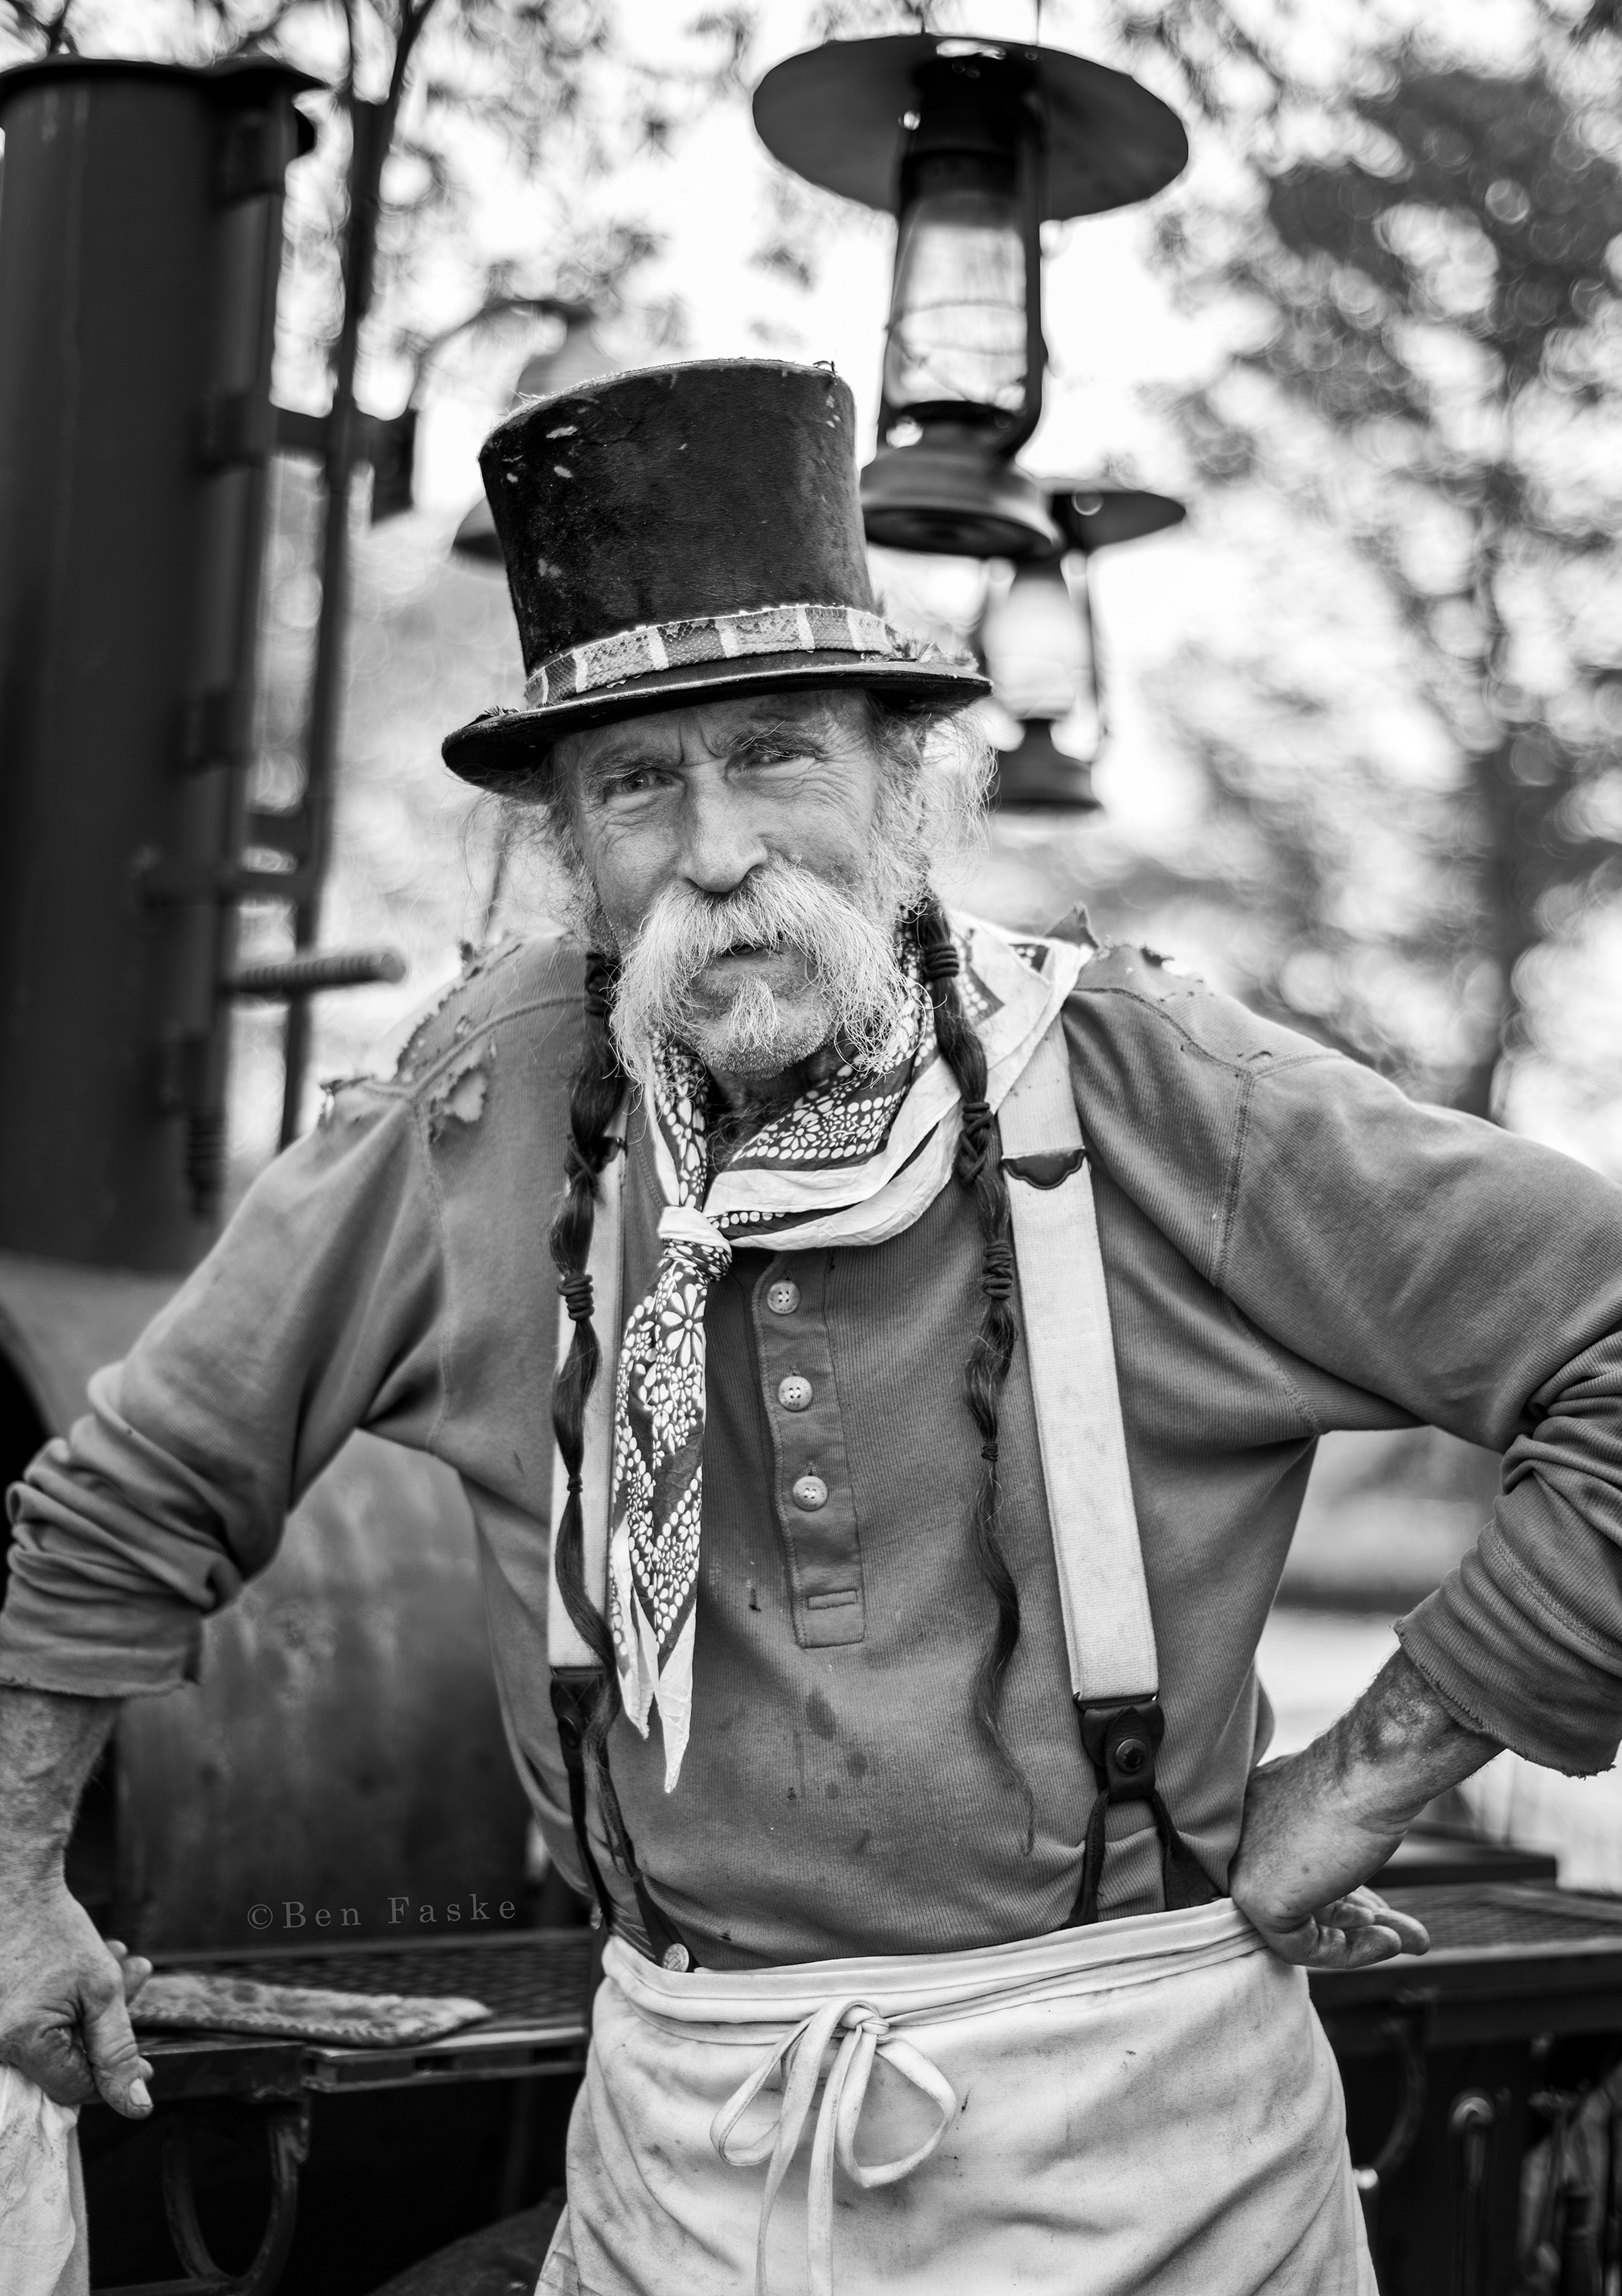 "Talk about character, this guy had it all. He totally reminded me of Bill ""the Butcher"" Cutting played by Daniel Day-Lewis in the movie Gangs of New York."